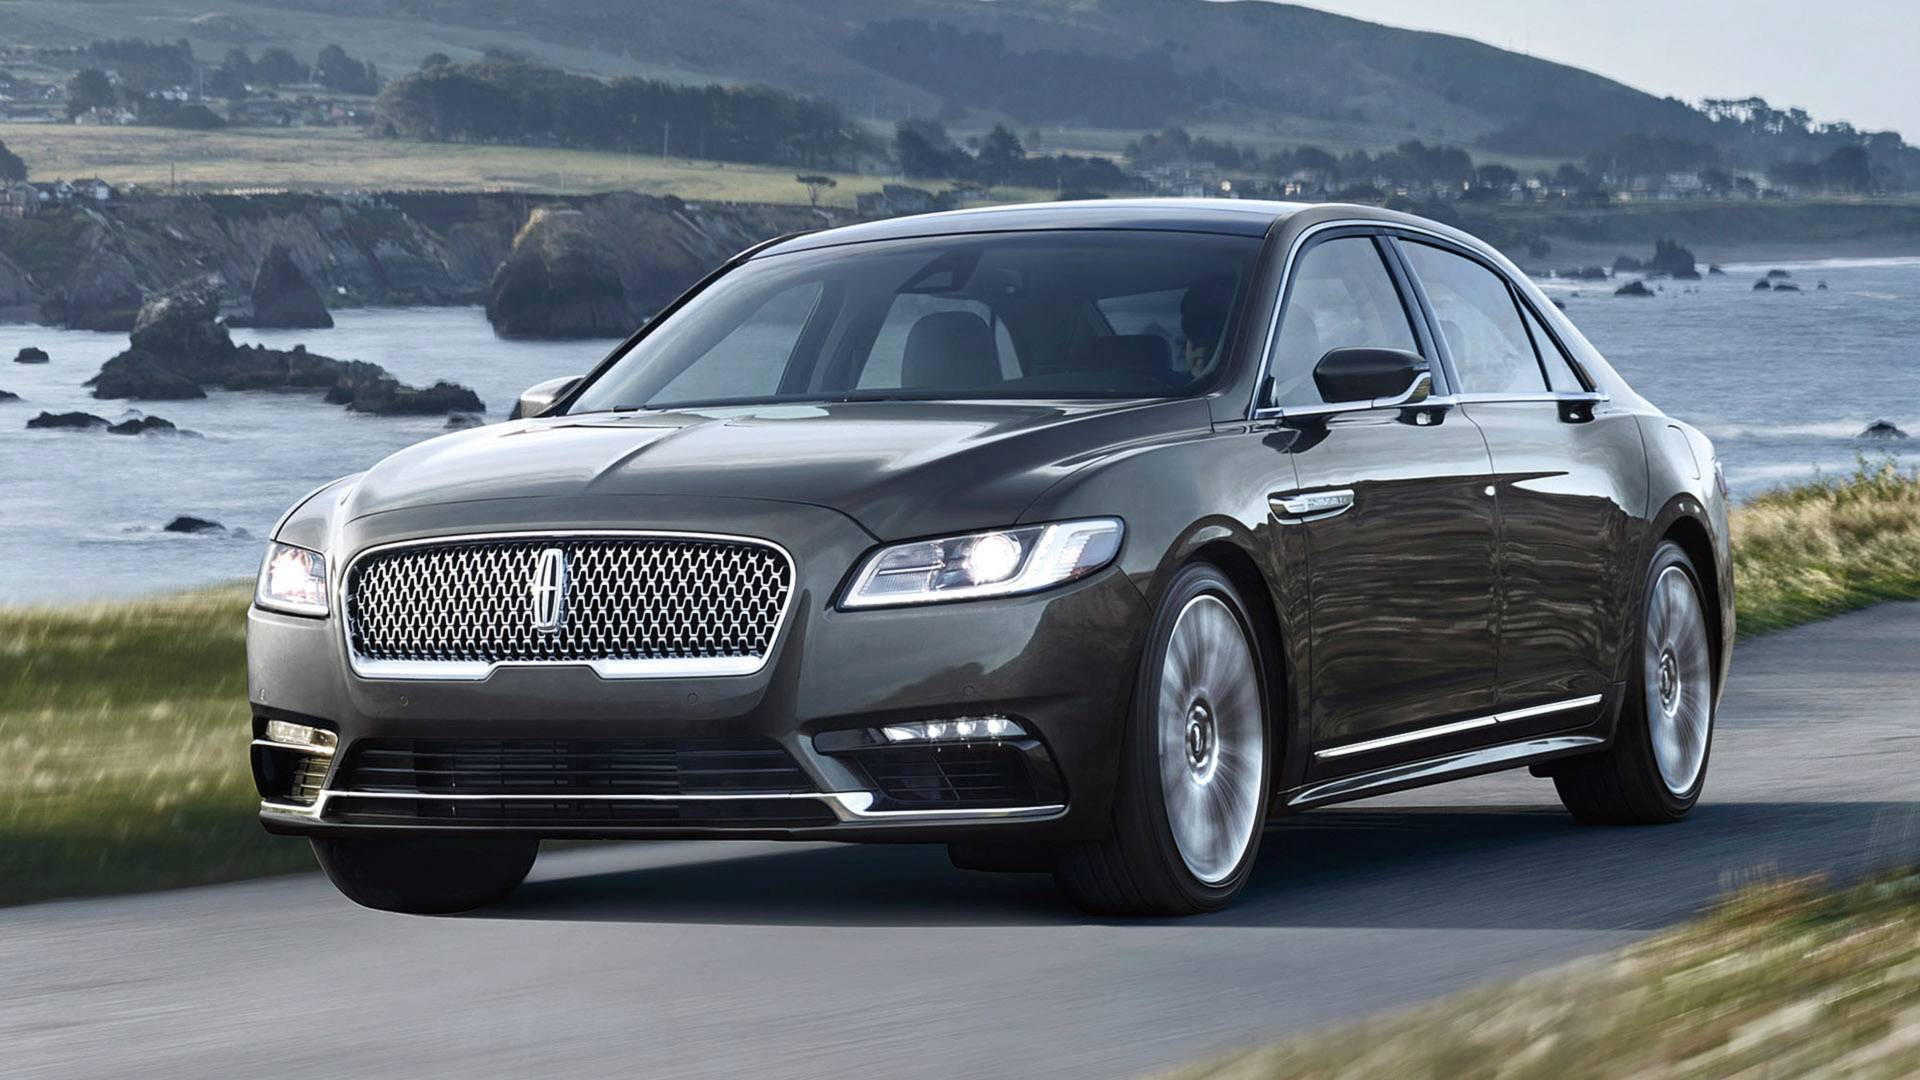 43 The 2020 Lincoln Continental Images